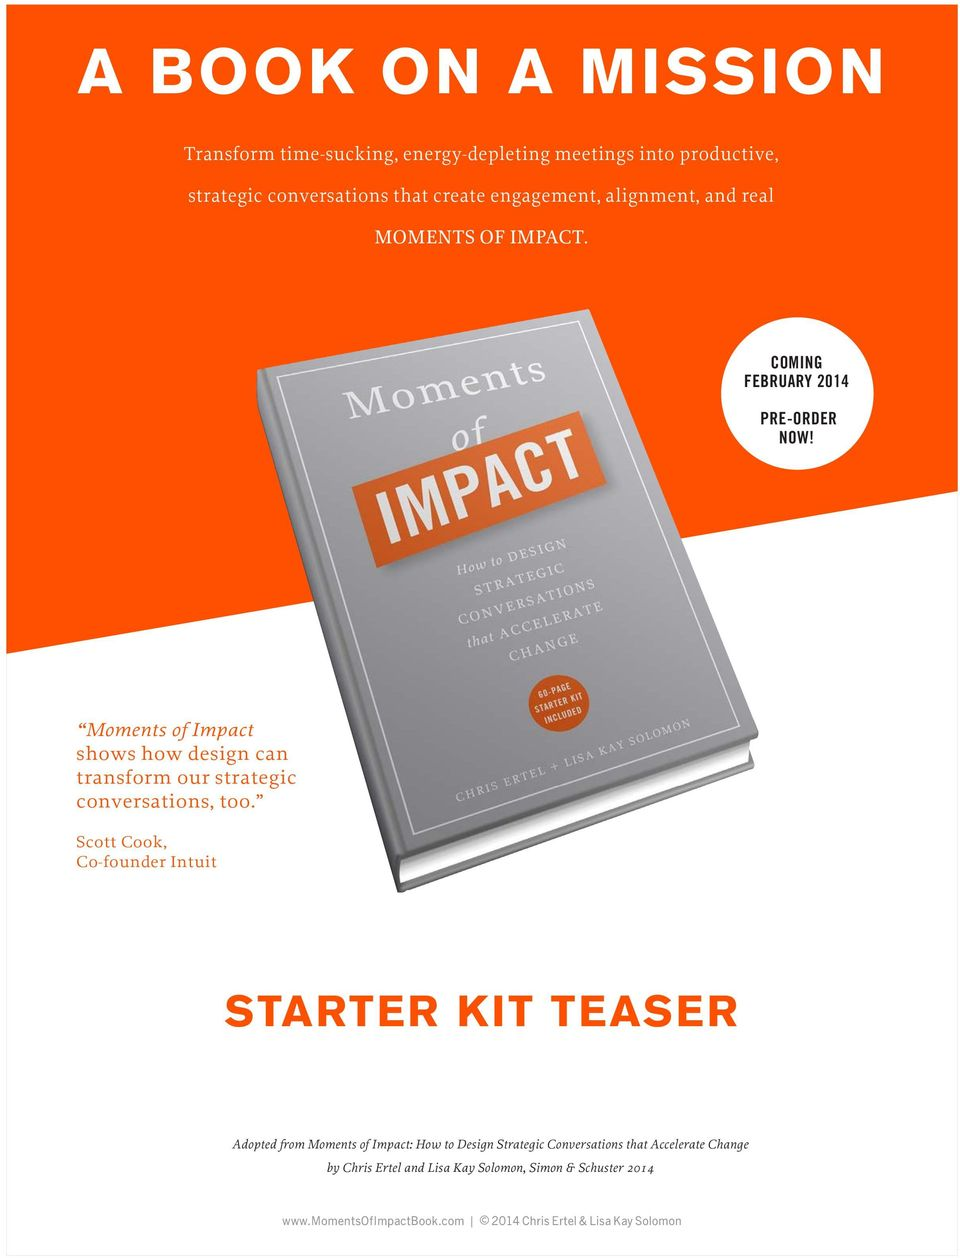 Moments of Impact shows how design can transform our strategic conversations, too.